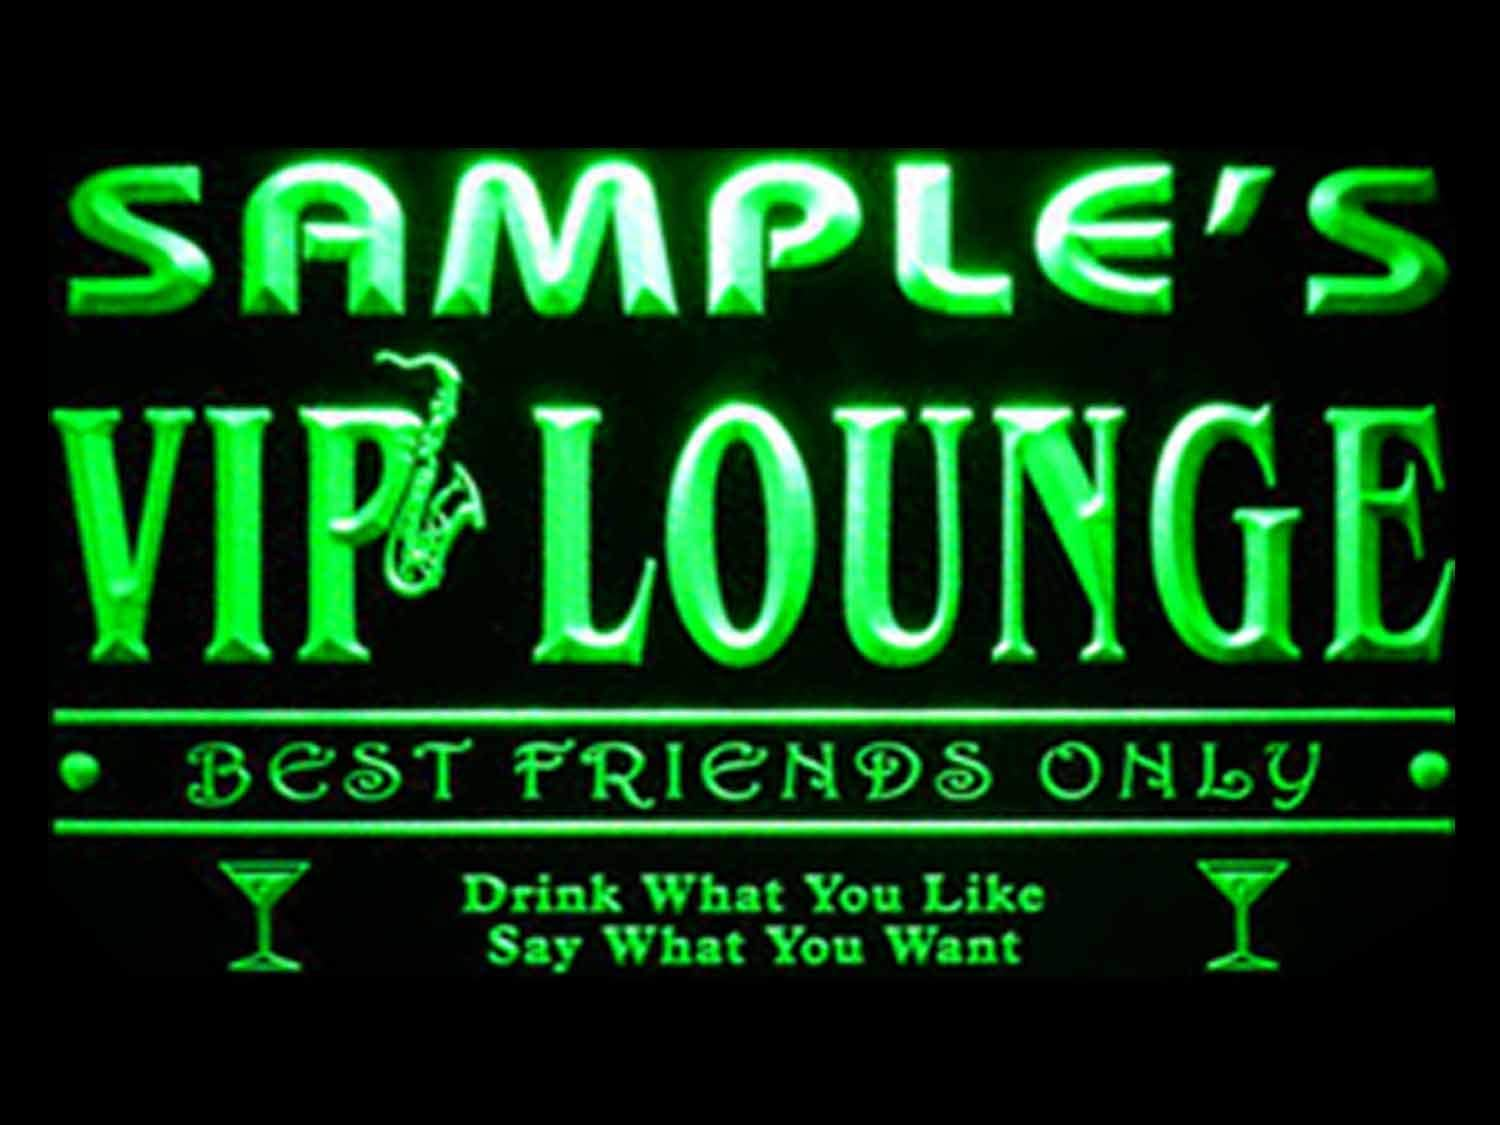 Name Personalized Custom VIP Lounge Best Friends Only Bar Beer Neon Sign Green 16x12 inches st4s43-qi-tm-g